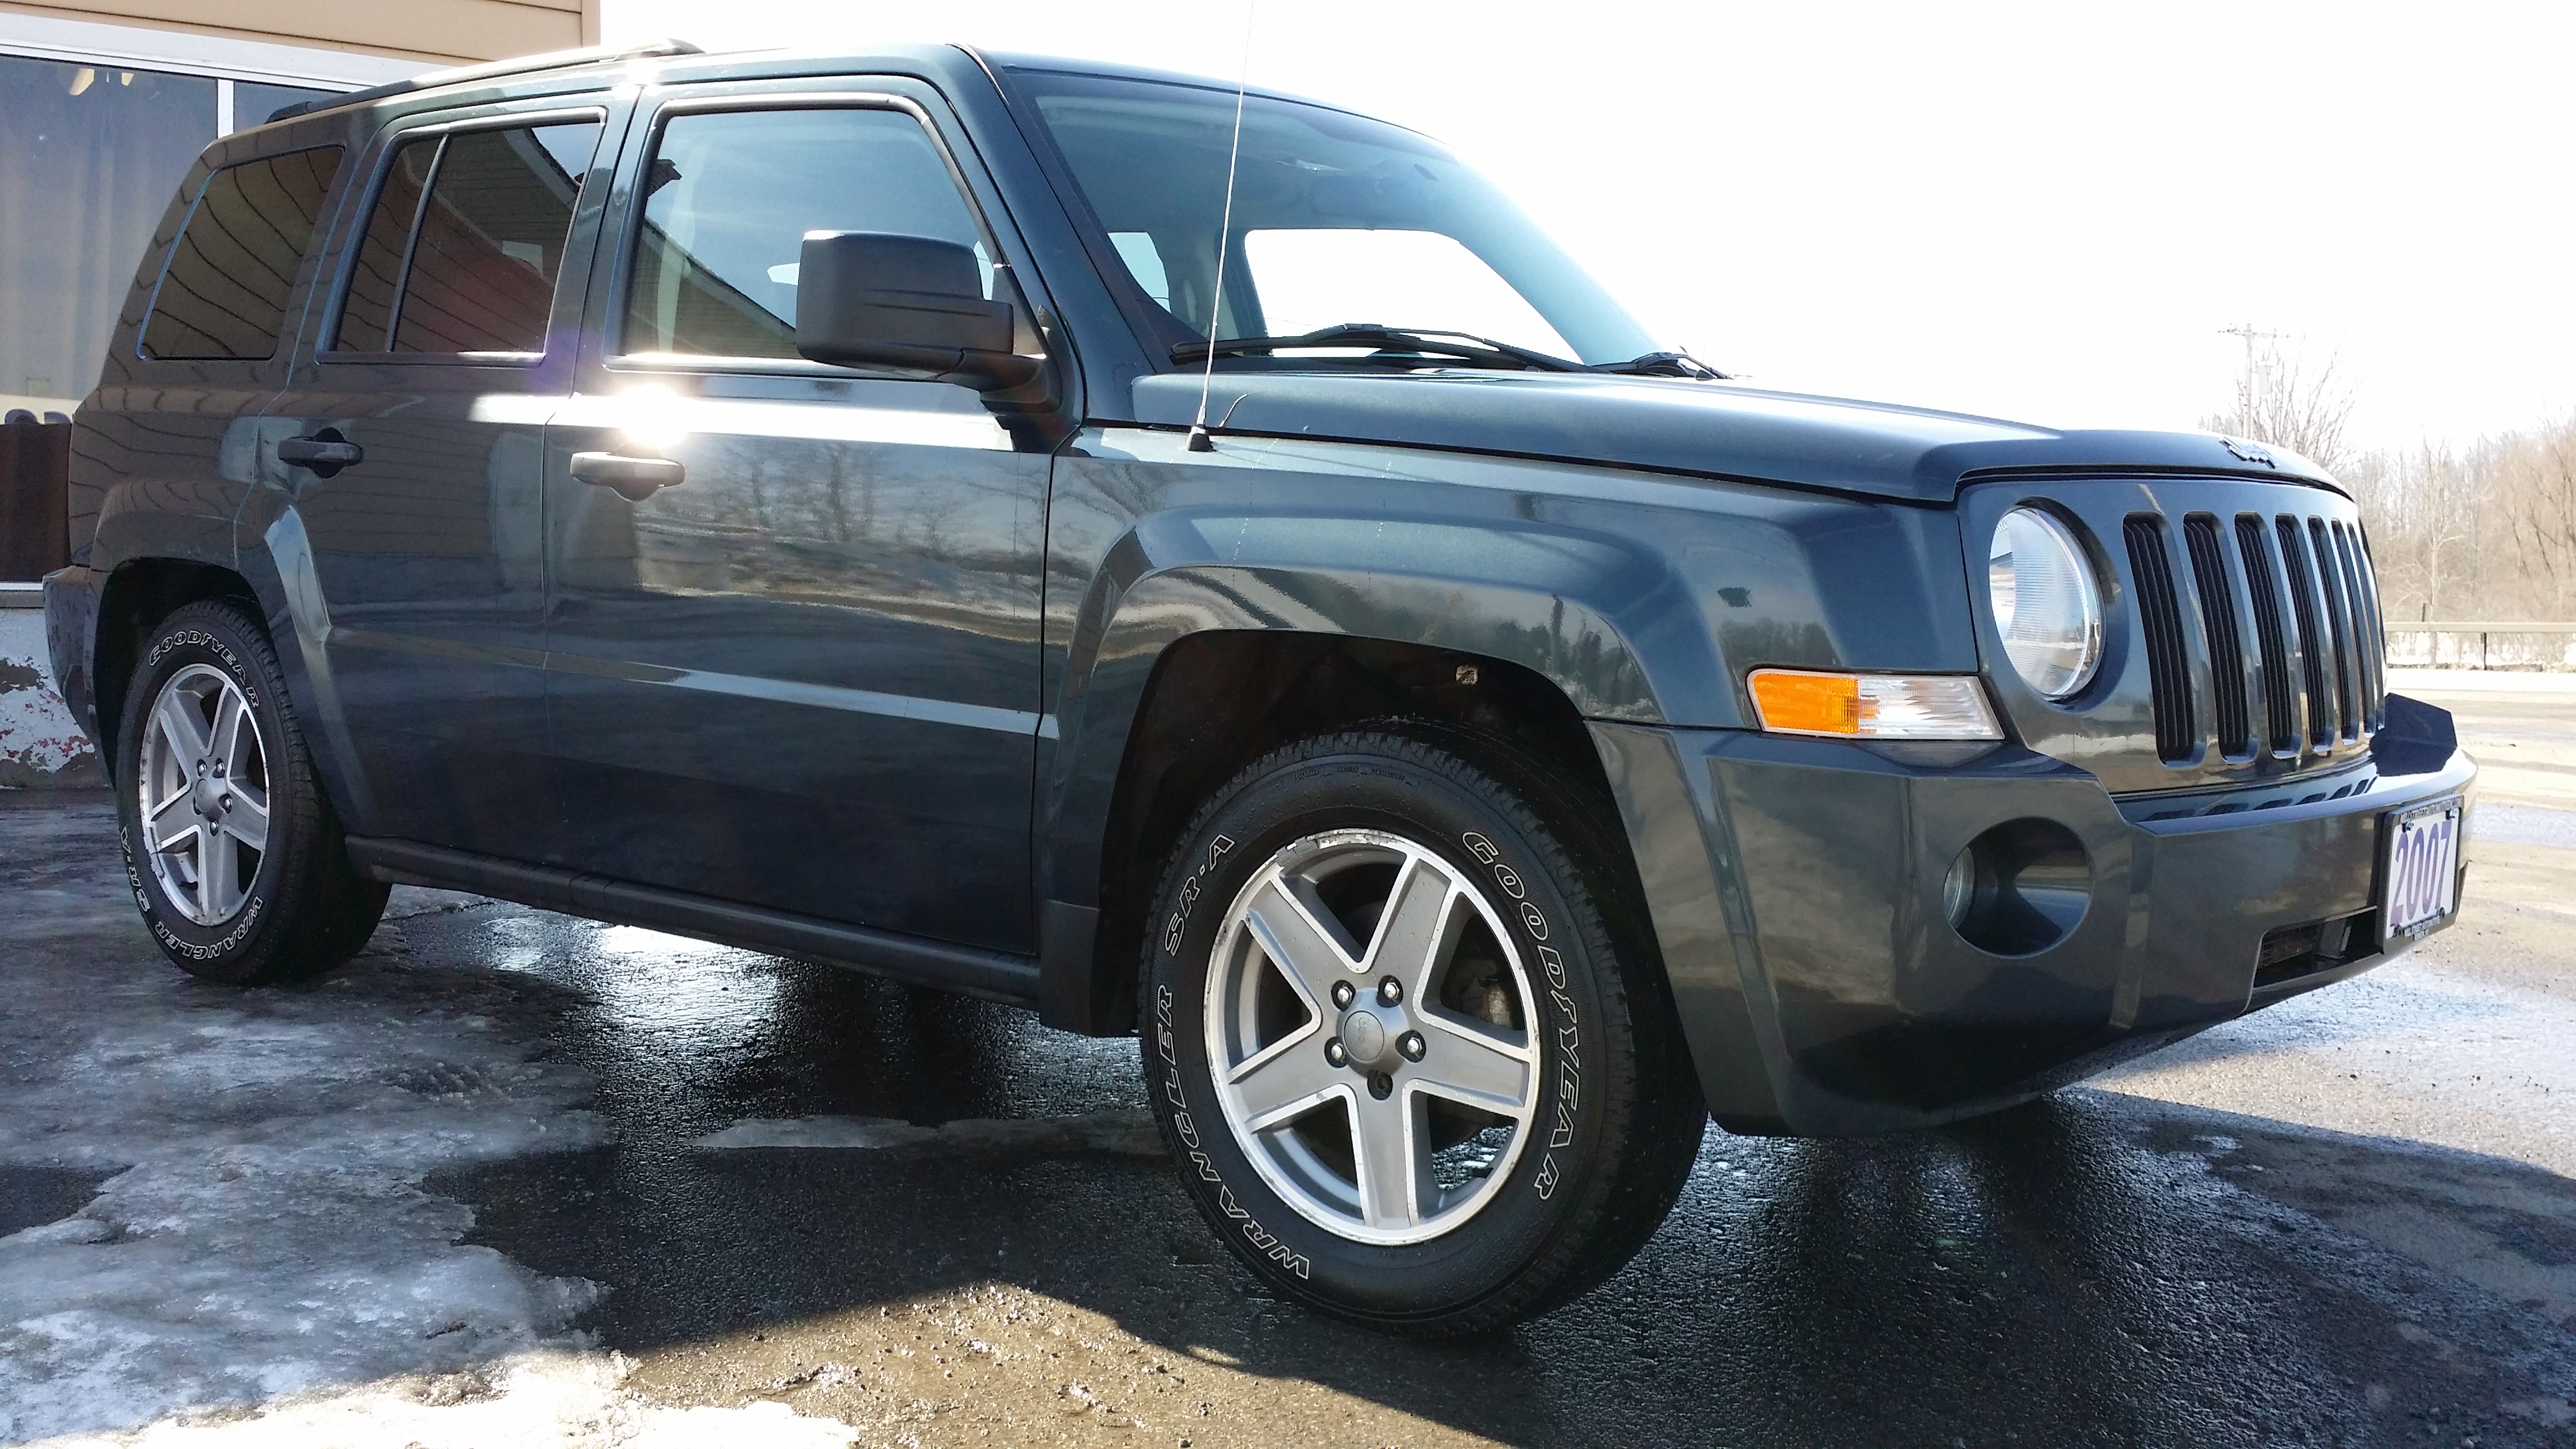 jeep patriot towing capacity jeep patriot resale value pictures to pin. Cars Review. Best American Auto & Cars Review